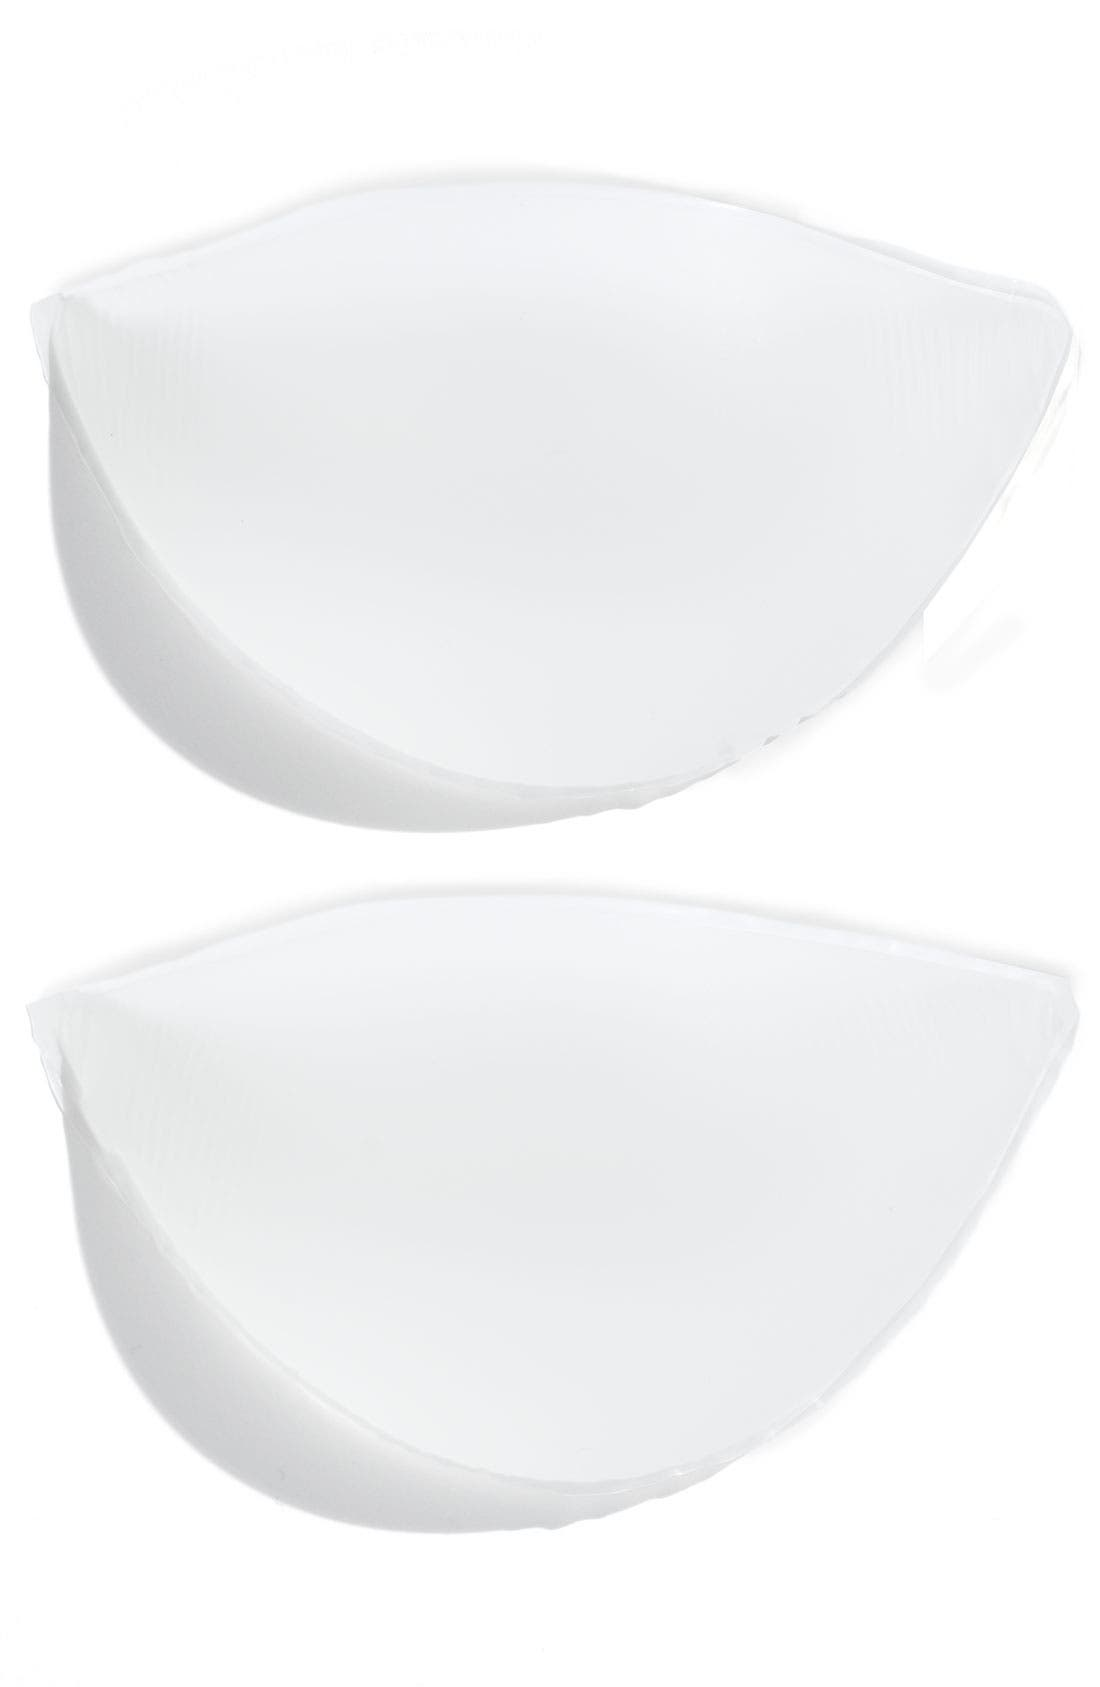 NORDSTROM LINGERIE, 'NO84787' Push-Up Gel Pads, Main thumbnail 1, color, NEW CLEAR